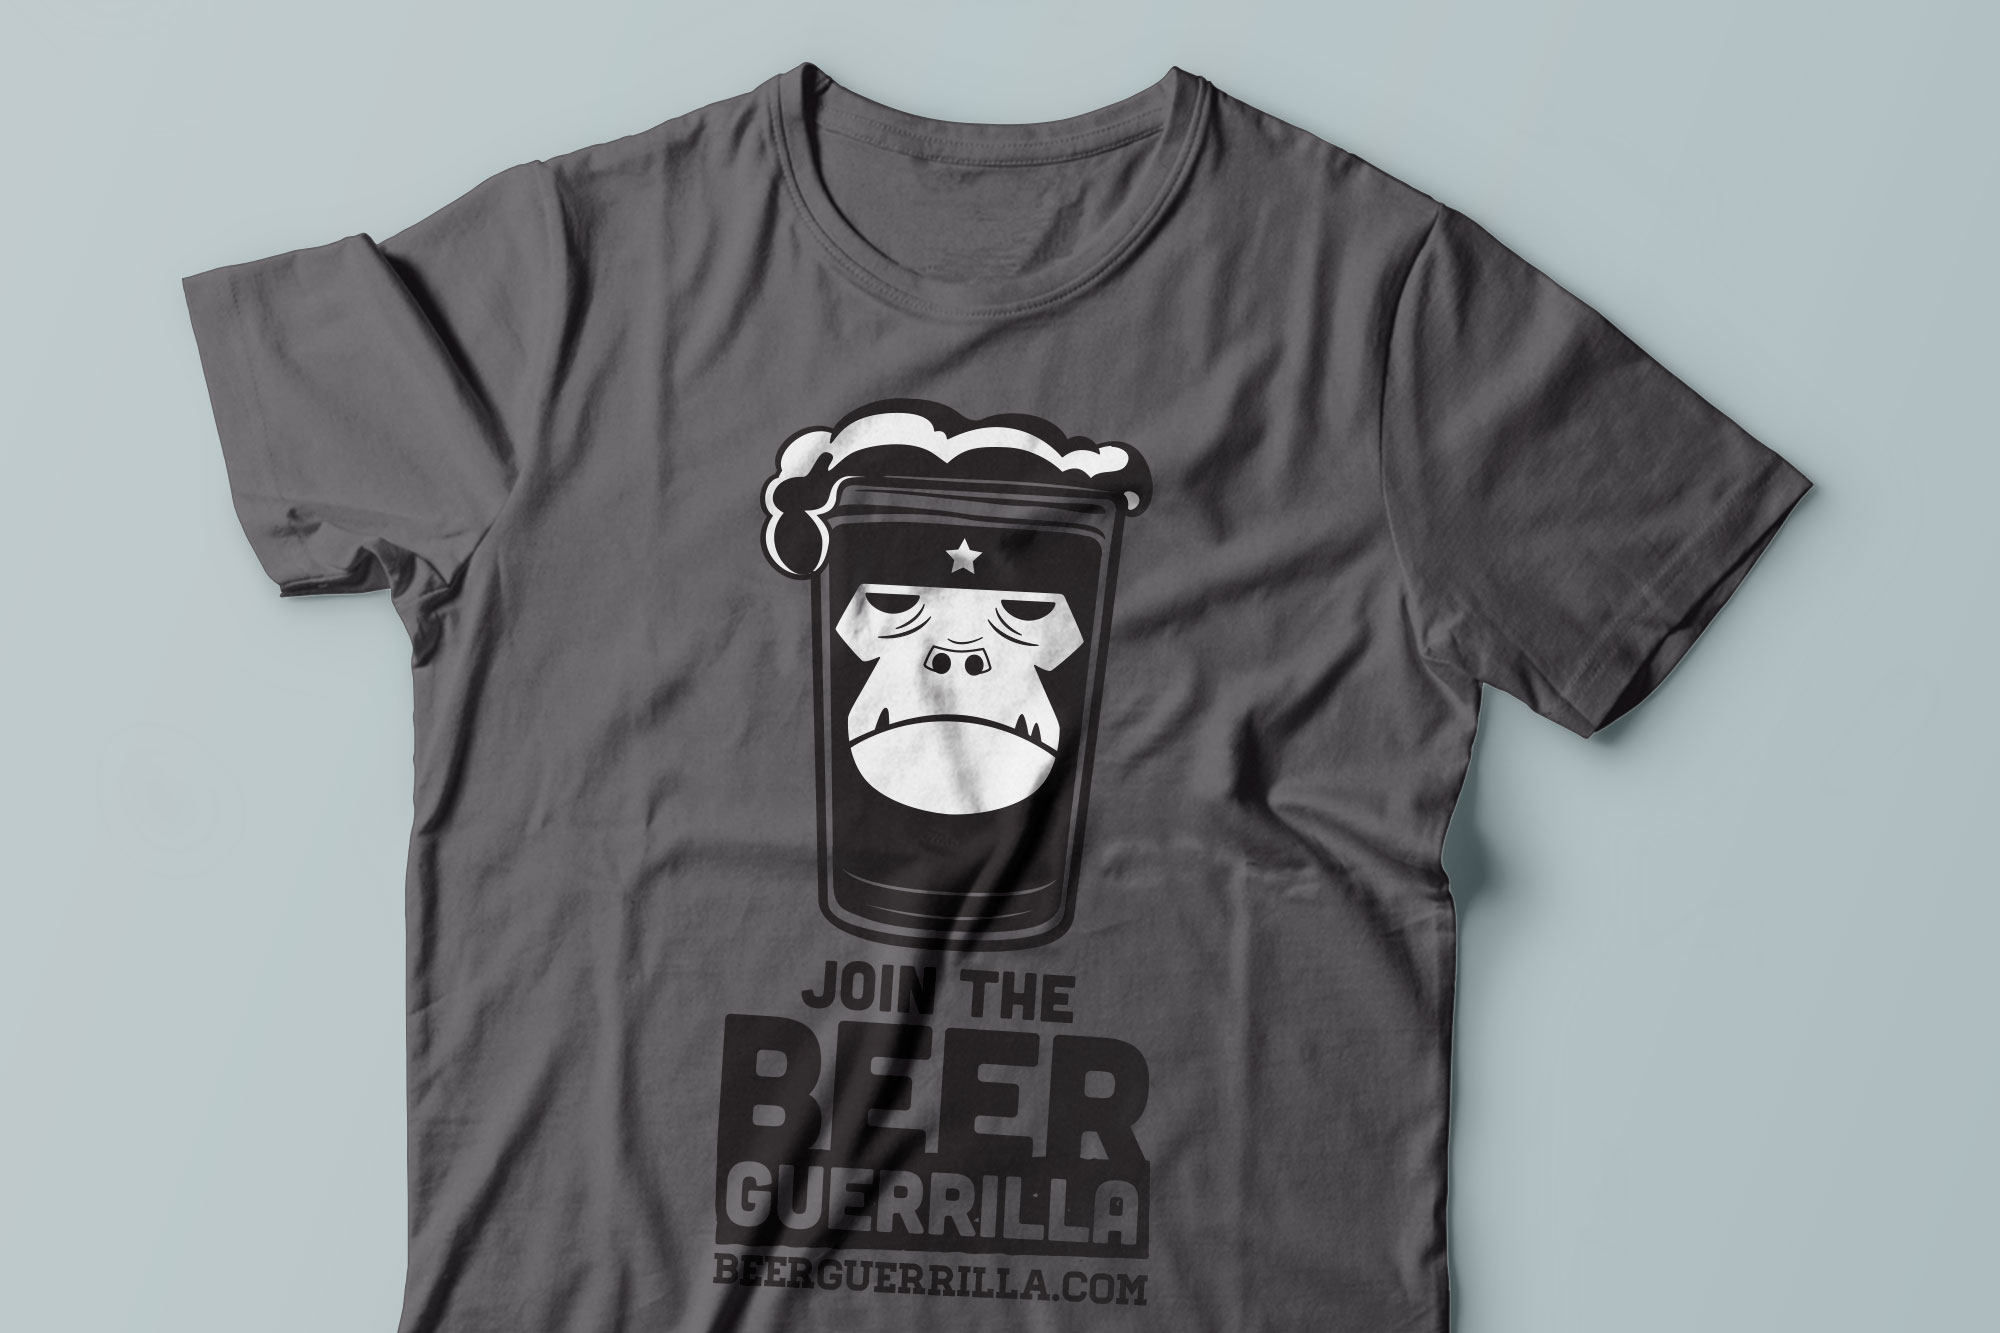 beer guerrilla t-shirt design